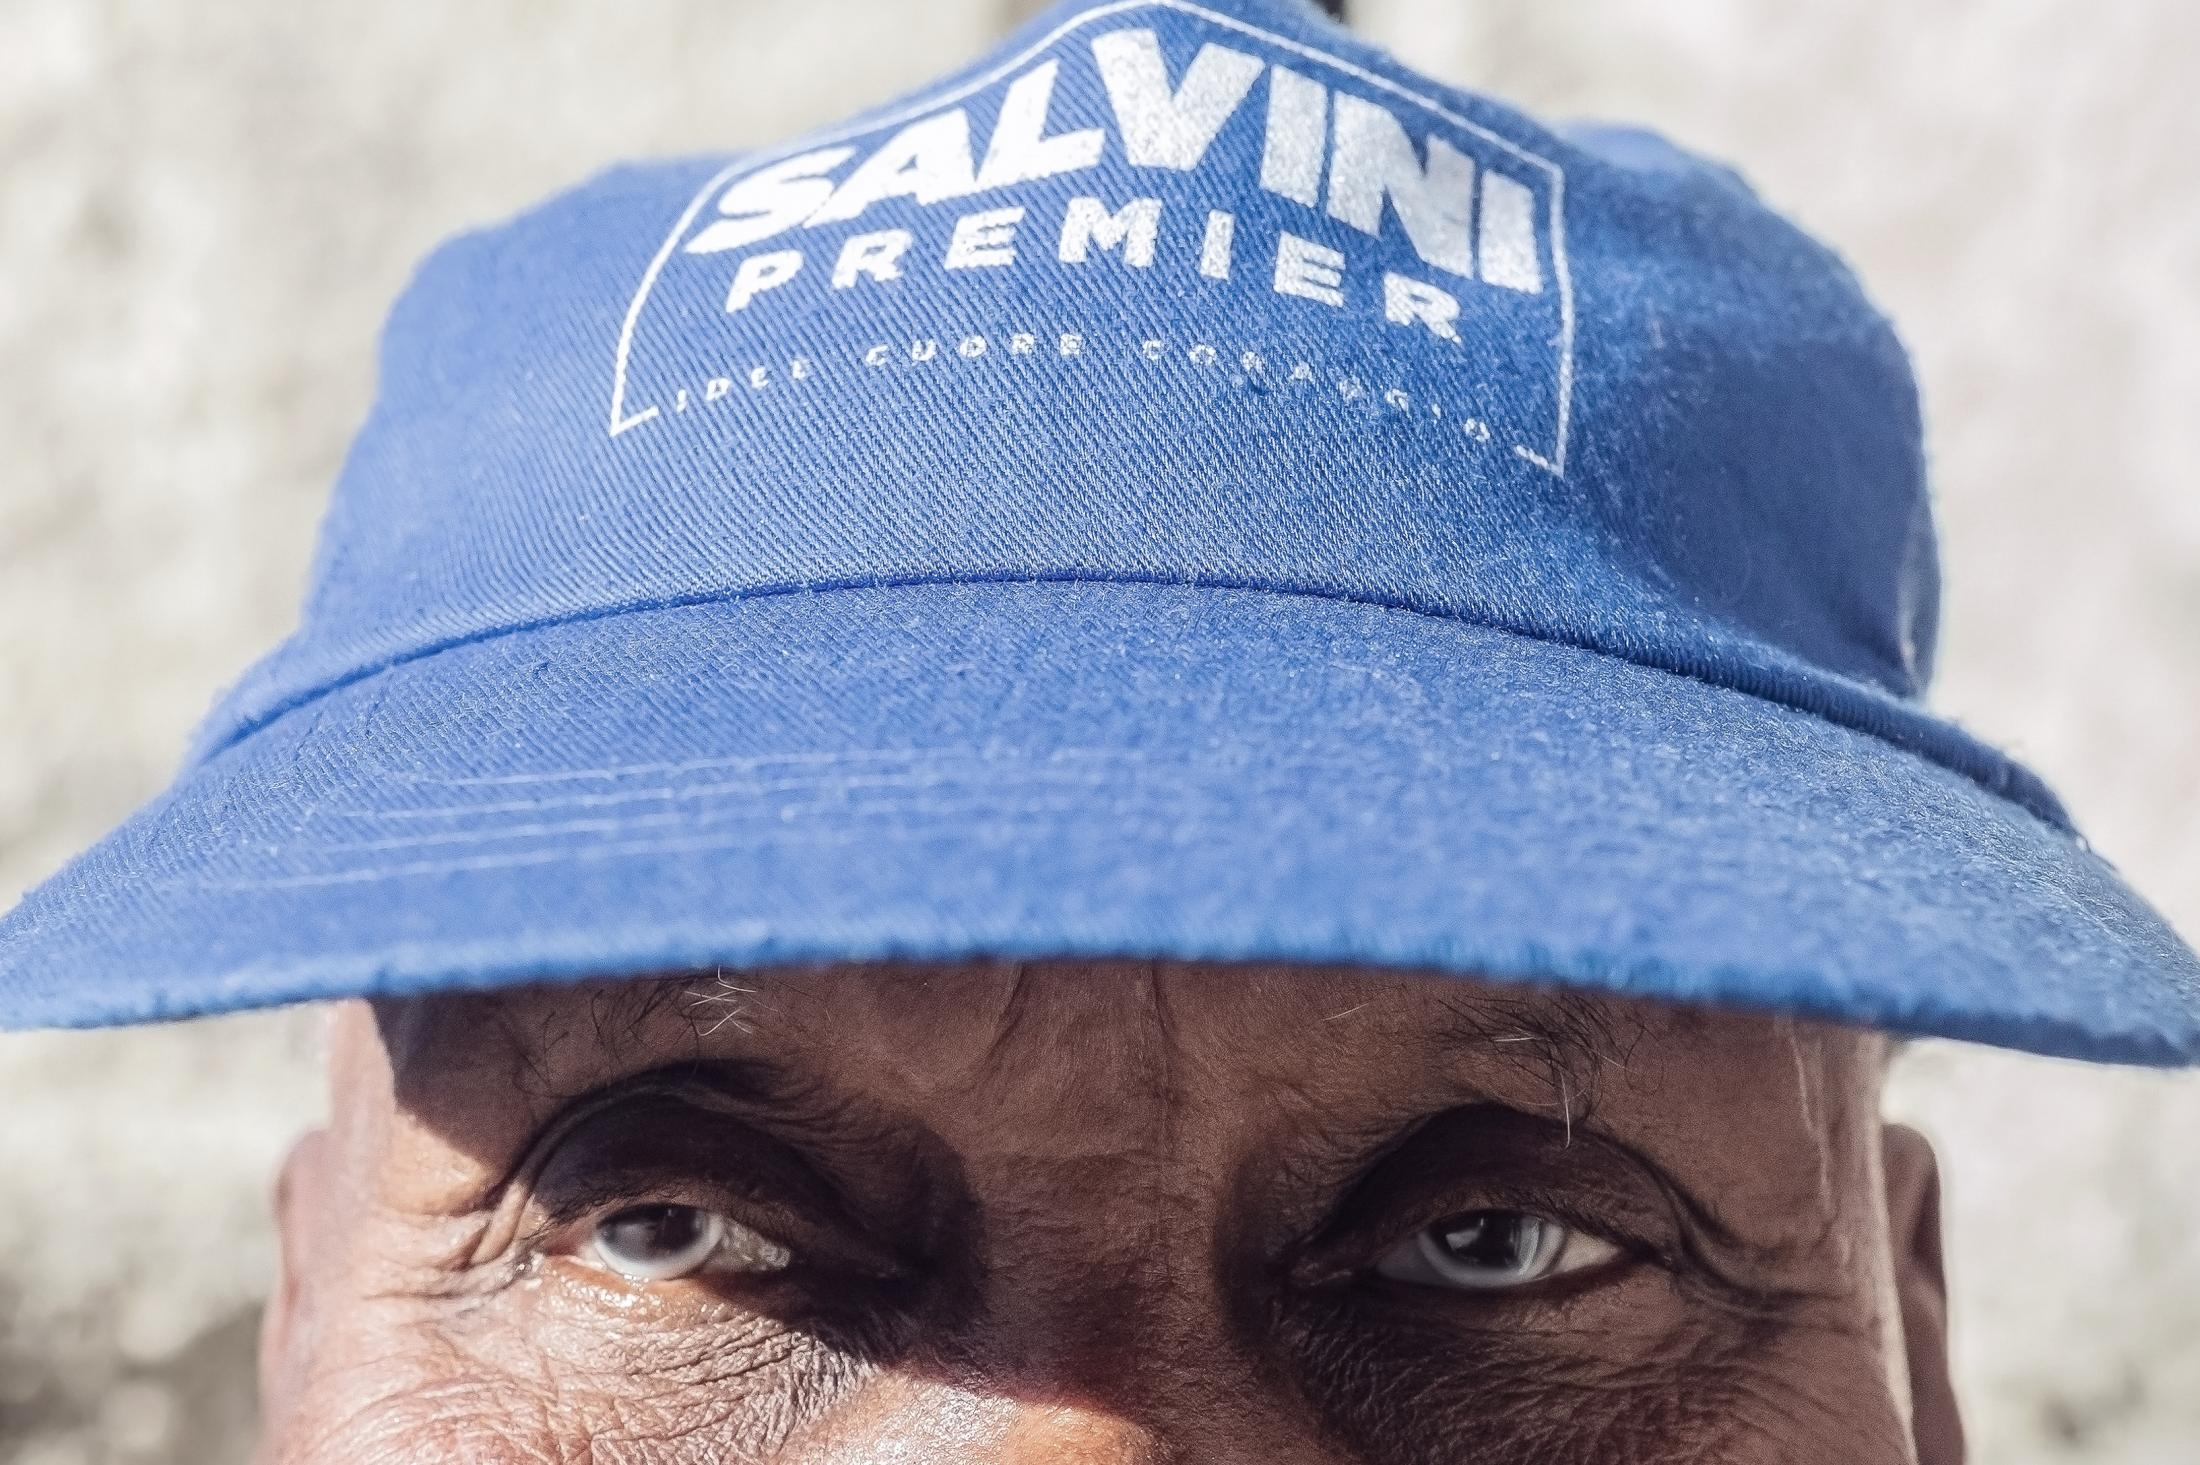 A man from Somalia is wearing a Salvini premier hat (Italy)